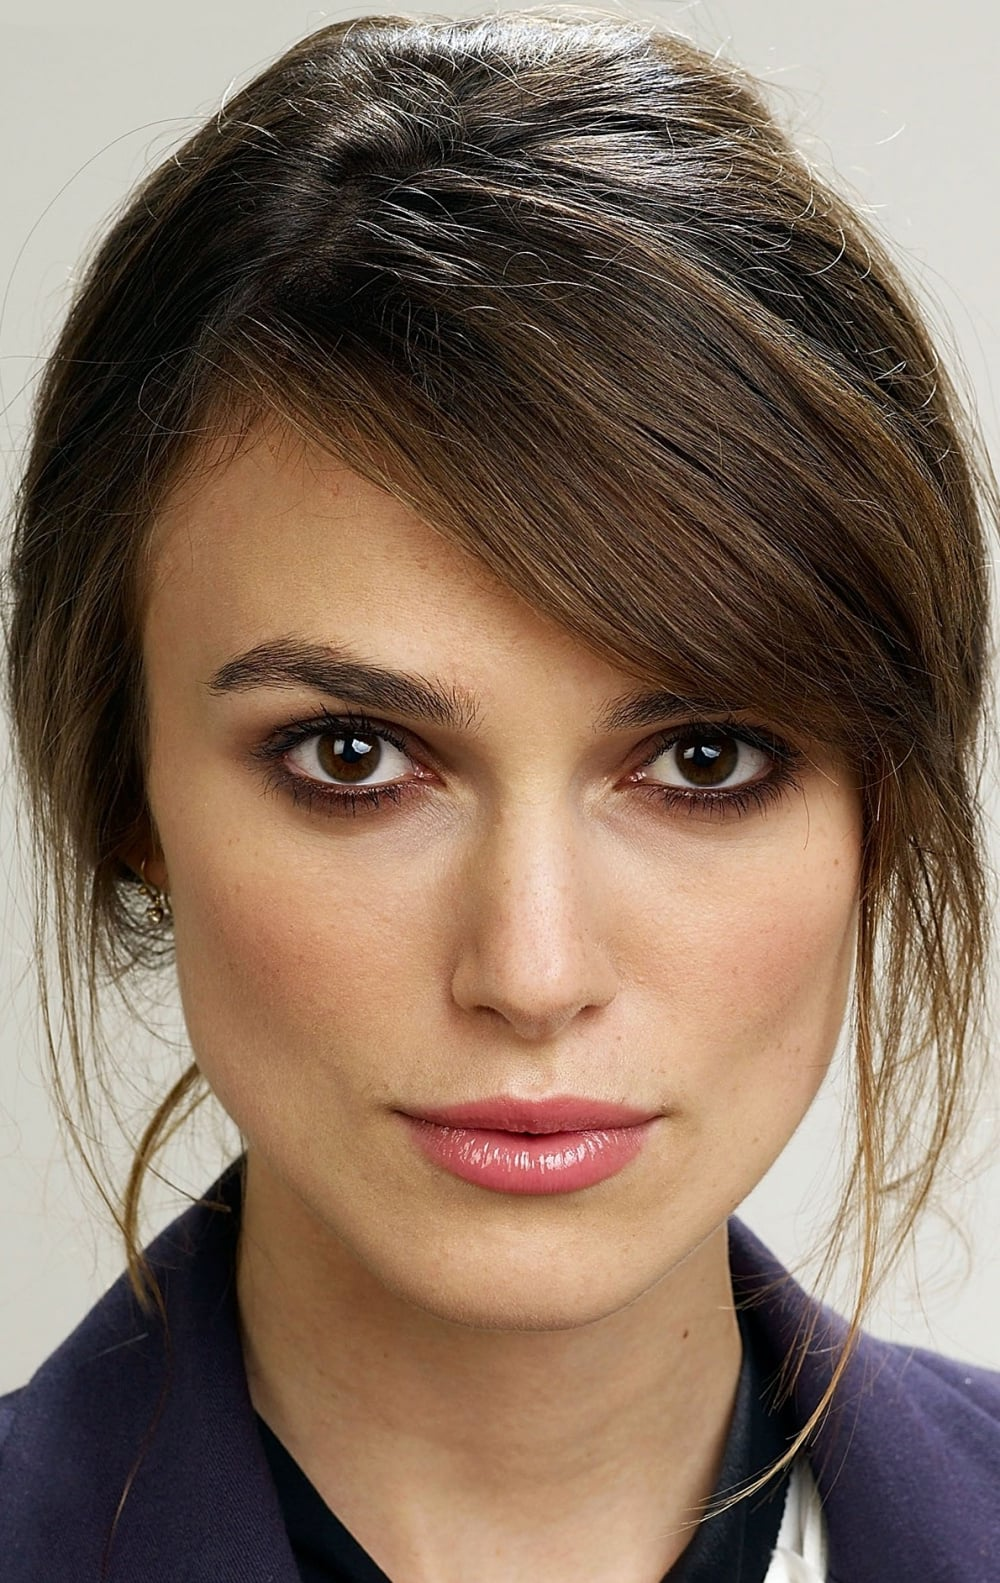 Cars Wallpaper Download For Android 30 Keira Knightley Wallpapers Hd Download